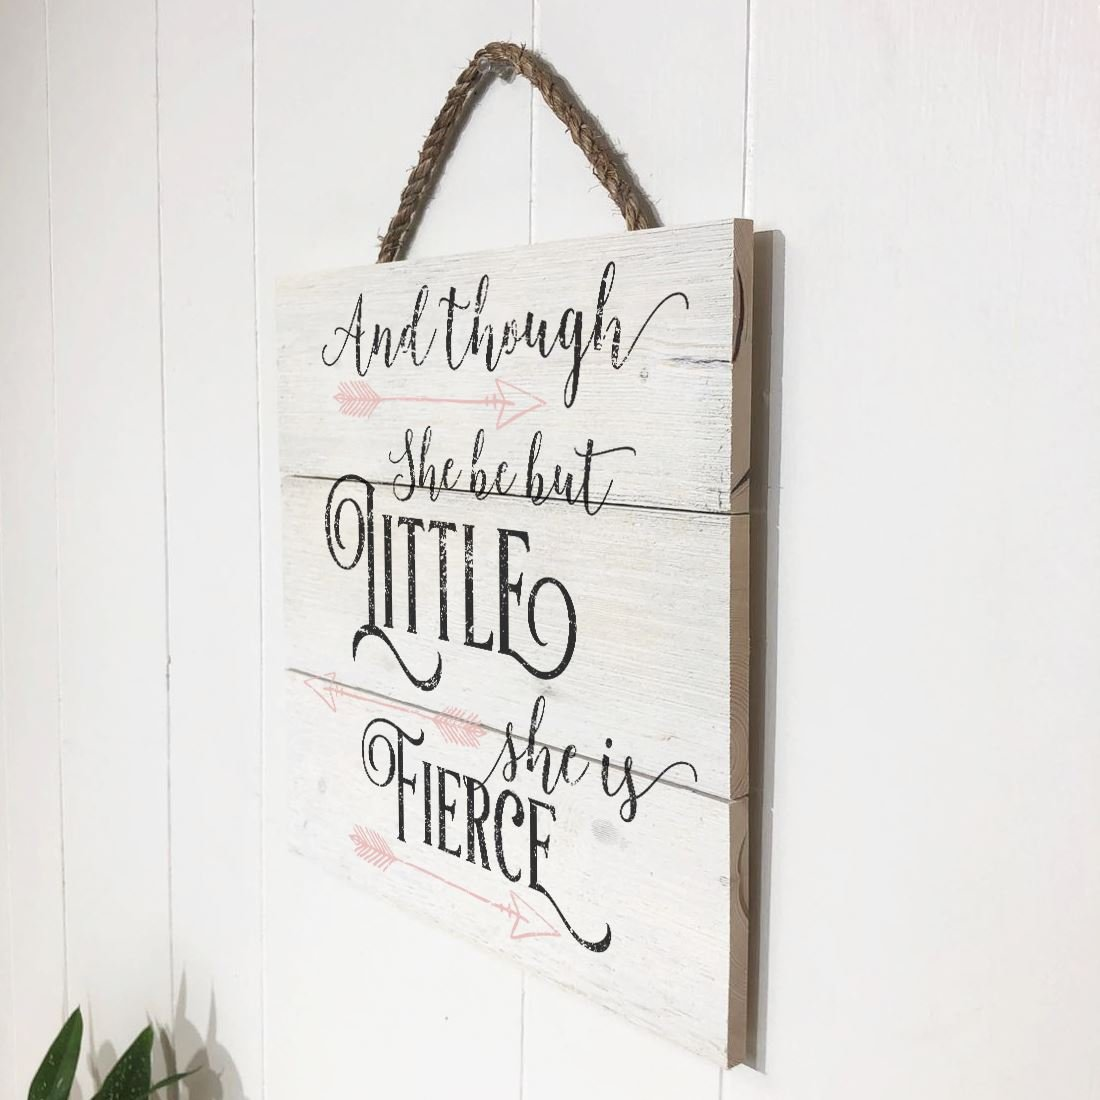 Artblox Rustic Nursery Room Sign And Though She Be but Little She is Fierce Quotes, Arrows Ornaments Artwork, Barn Wood Pallet Farmhouse Wooden Plaque Art Print, 10.5x10.5 - White by Artblox (Image #5)